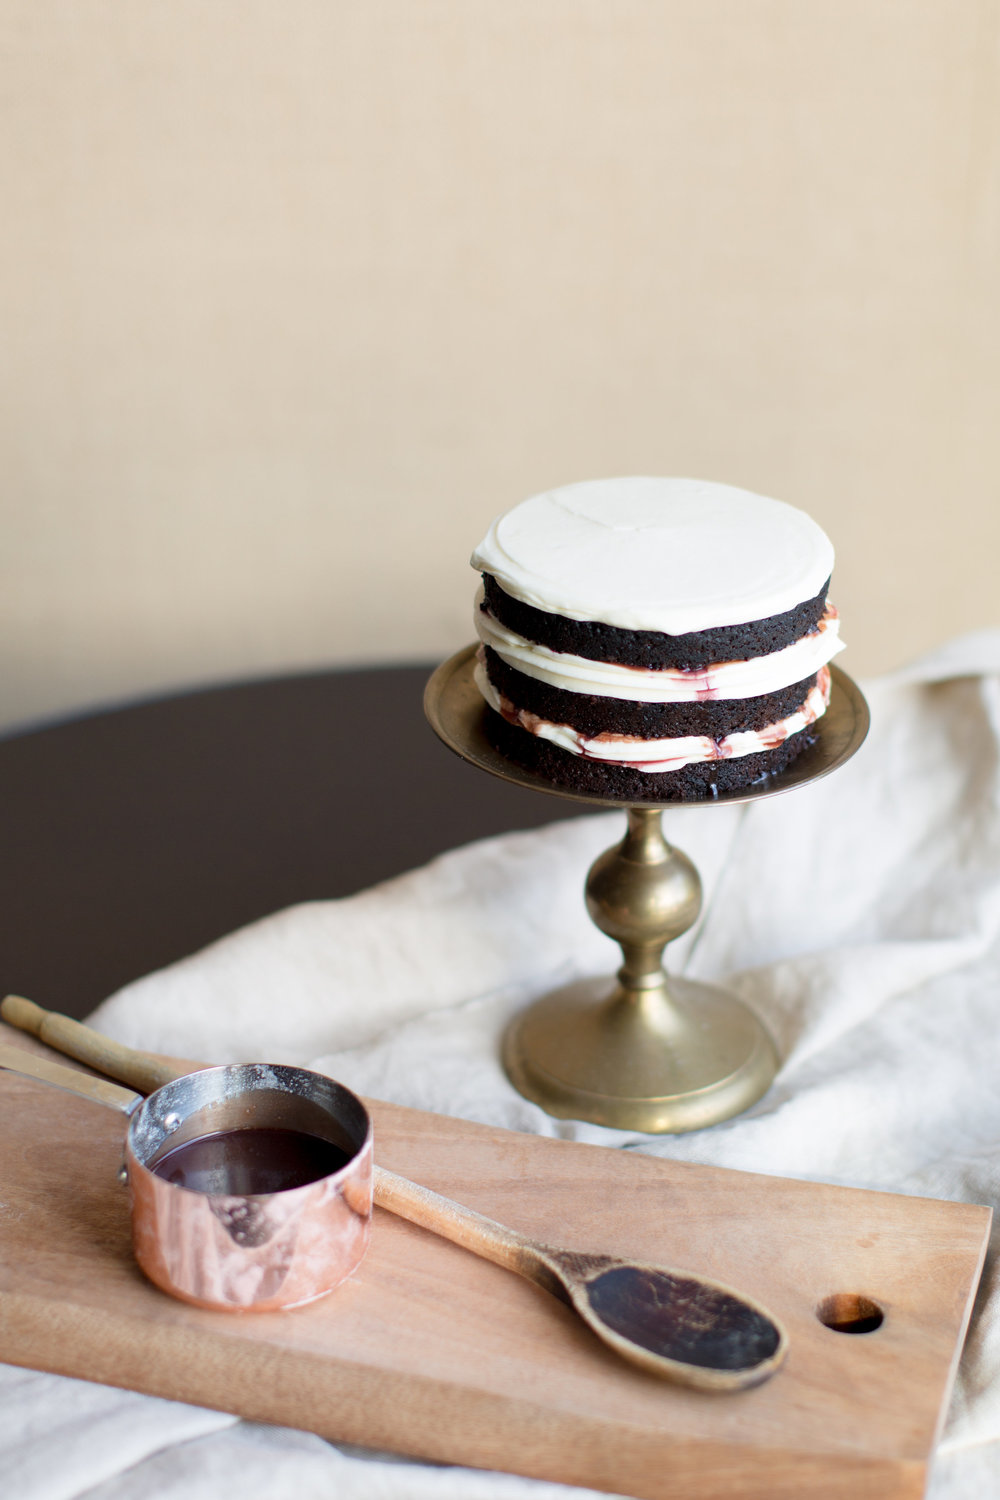 Baking with red wine | Cake Bloom + Panglass Collaboration | Pinot Noir Caramel Sauce | The School of Styling - http://www.theschoolofstyling.com